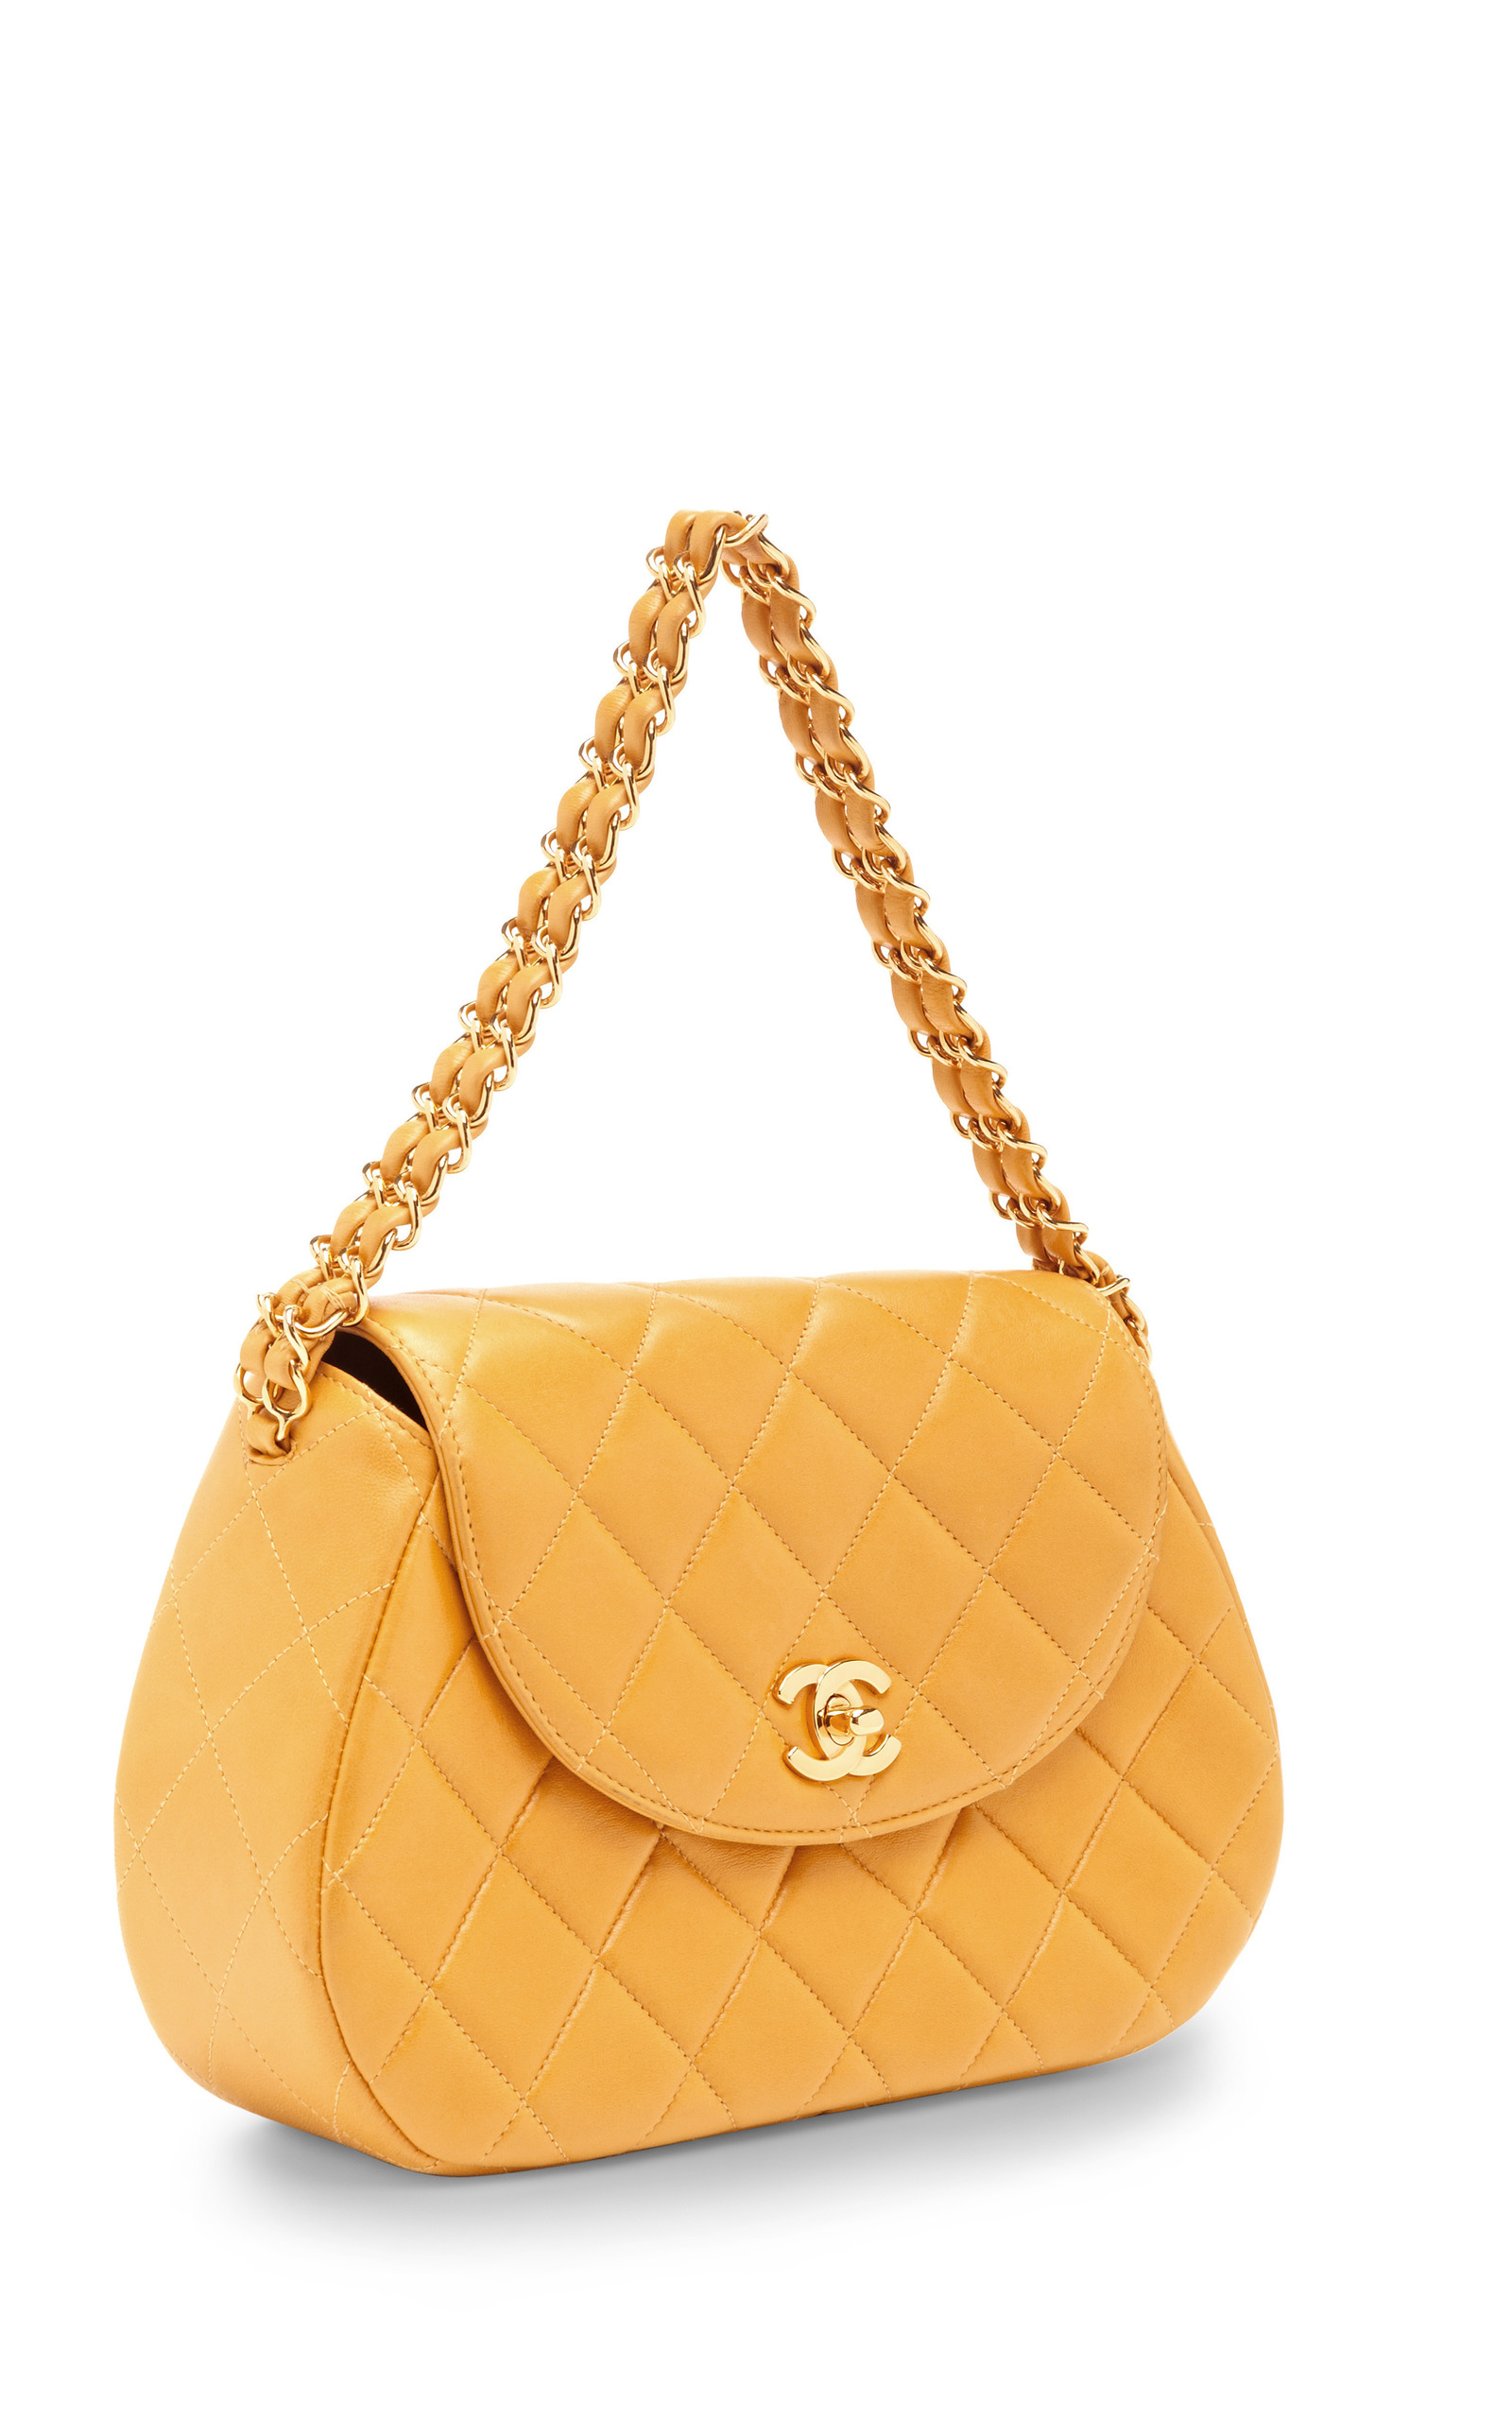 554fd03b8e48 Collectible JacketsVintage Chanel Yellow Quilted Round Flap Bag. CLOSE.  Loading. Loading